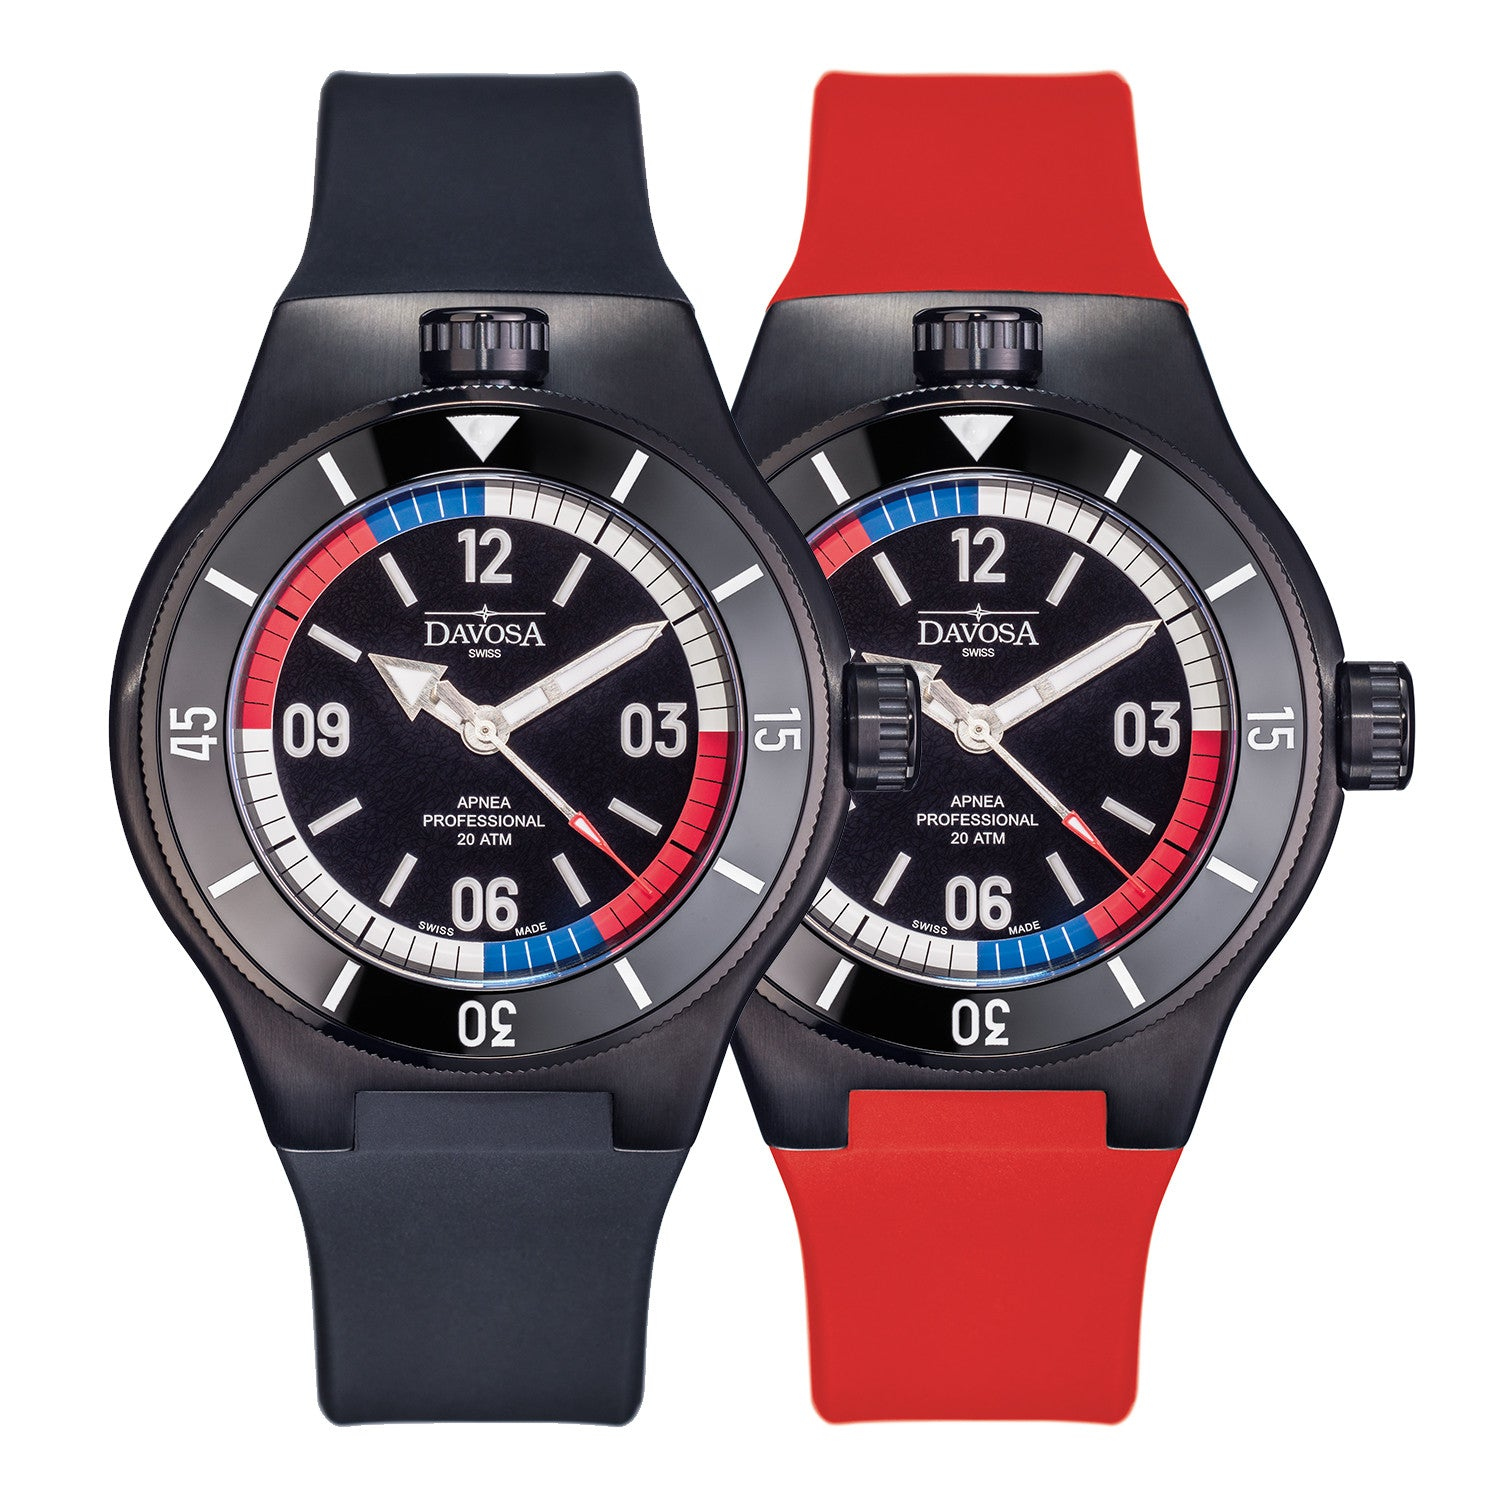 introducing bay sjx tudor pvd in the dark black watches